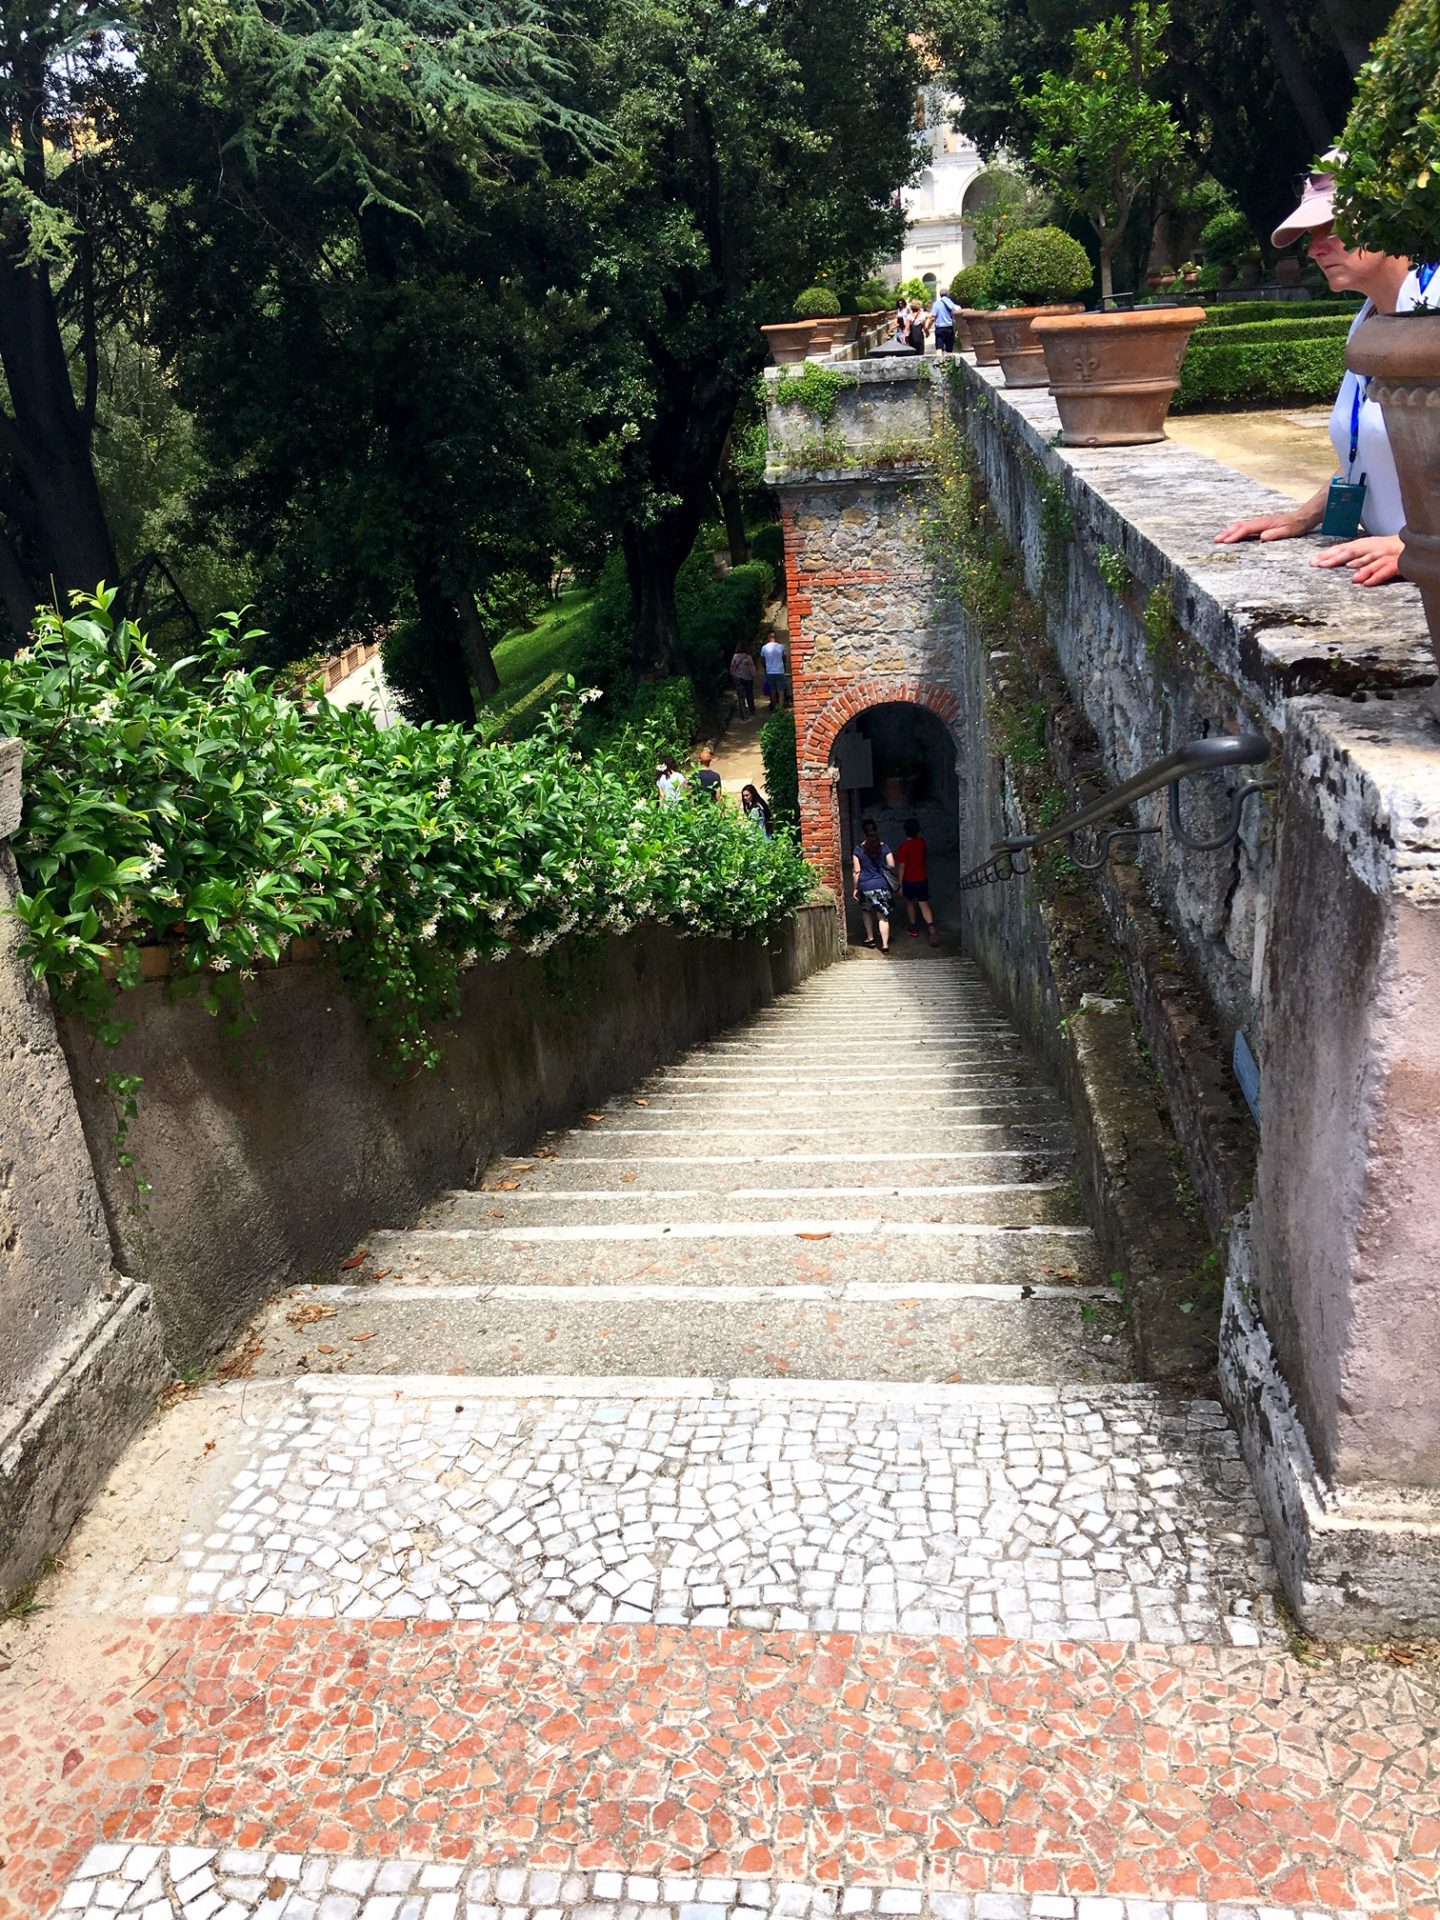 Stairway to the gardens at Villa d'Este in Tivoli